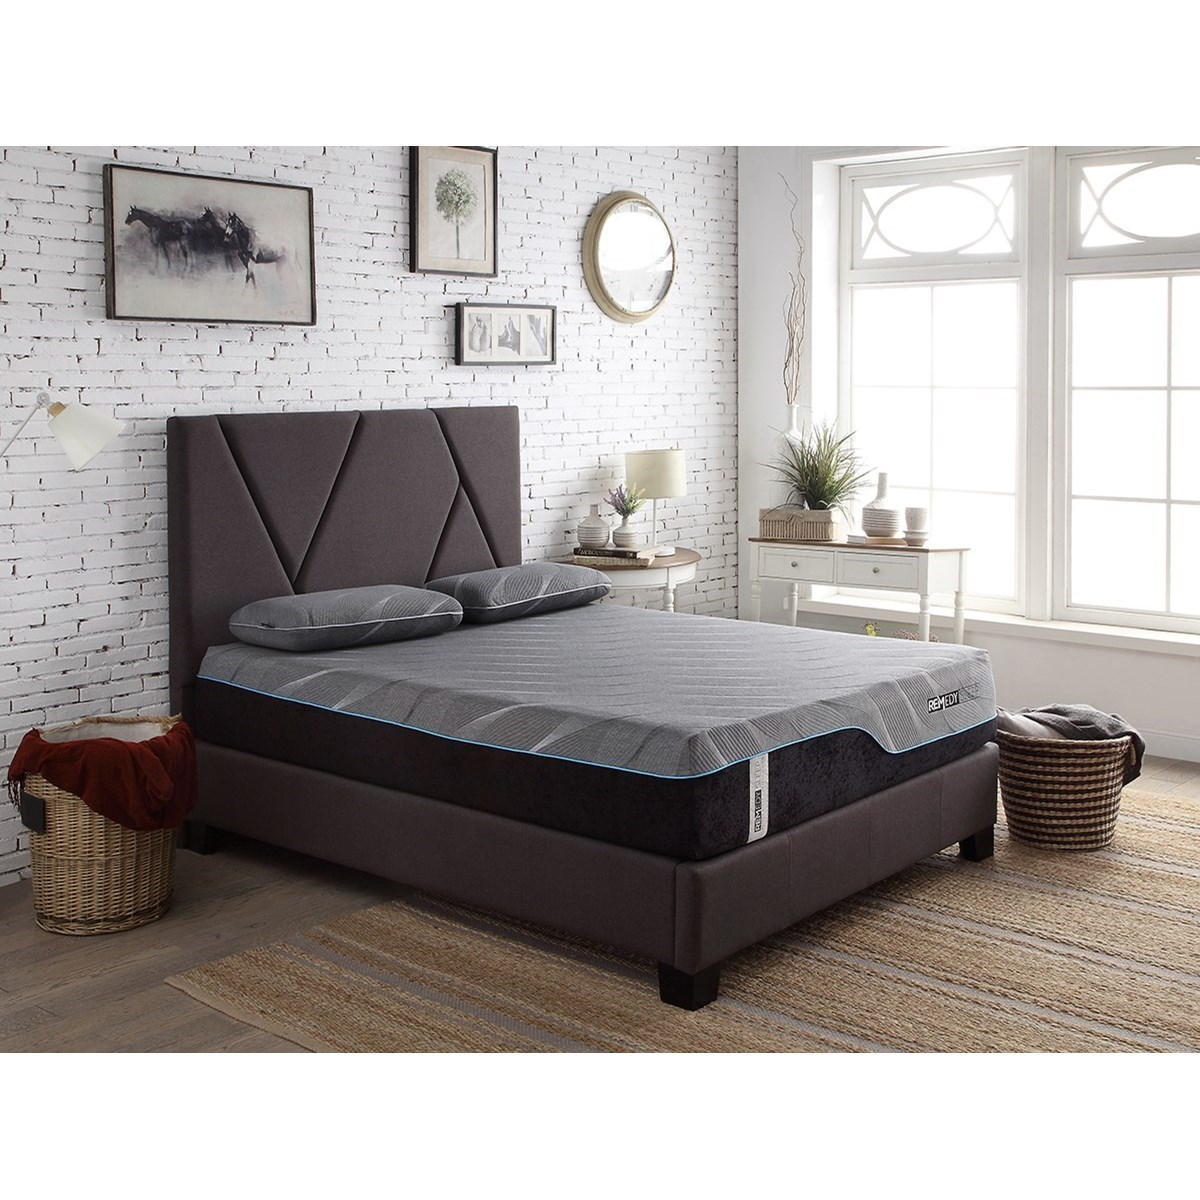 Bed Queen Modern Beds Contemporary Queen Upholstered Bed By Legends Furniture At Vandrie Home Furnishings